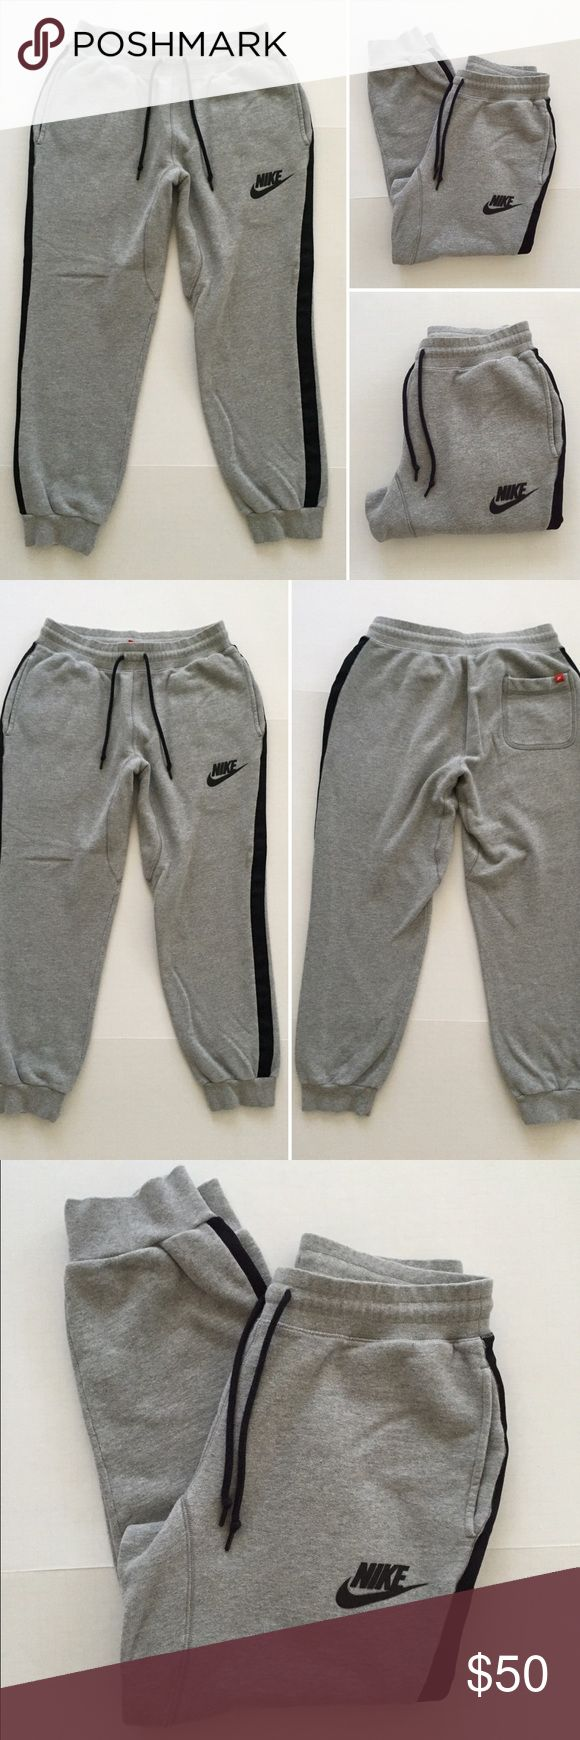 "[Nike] men's athletic gray jogger sweatpants M [Nike] men's athletic gray jogger sweatpants M •🆕listing •good pre-owned condition •grey with black detail 28"" insignia •length/inseam 29"" •2 front pockets, 1 back pocket •material 100% cotton, soft fleece sweats •subtle material changes from wash/wear when looking up very close •Offers welcomed using the offer feature or bundle for the best discount••• Nike Pants Sweatpants & Joggers"